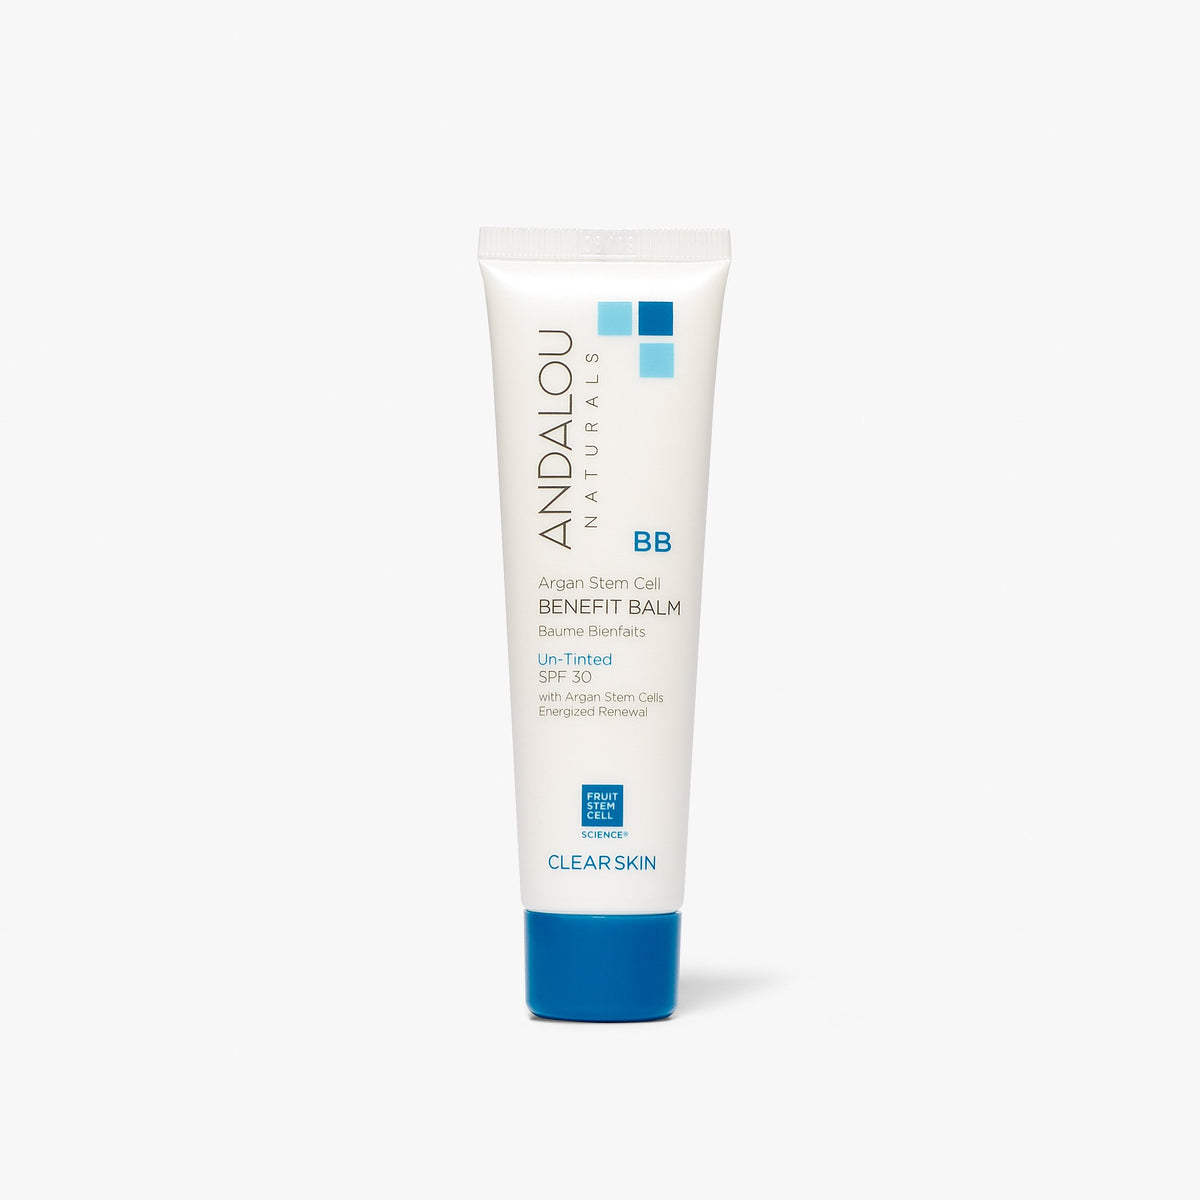 Clear Skin Argan Stem Cell BB Benefit Balm Un-Tinted SPF 30 - Andalou Naturals US